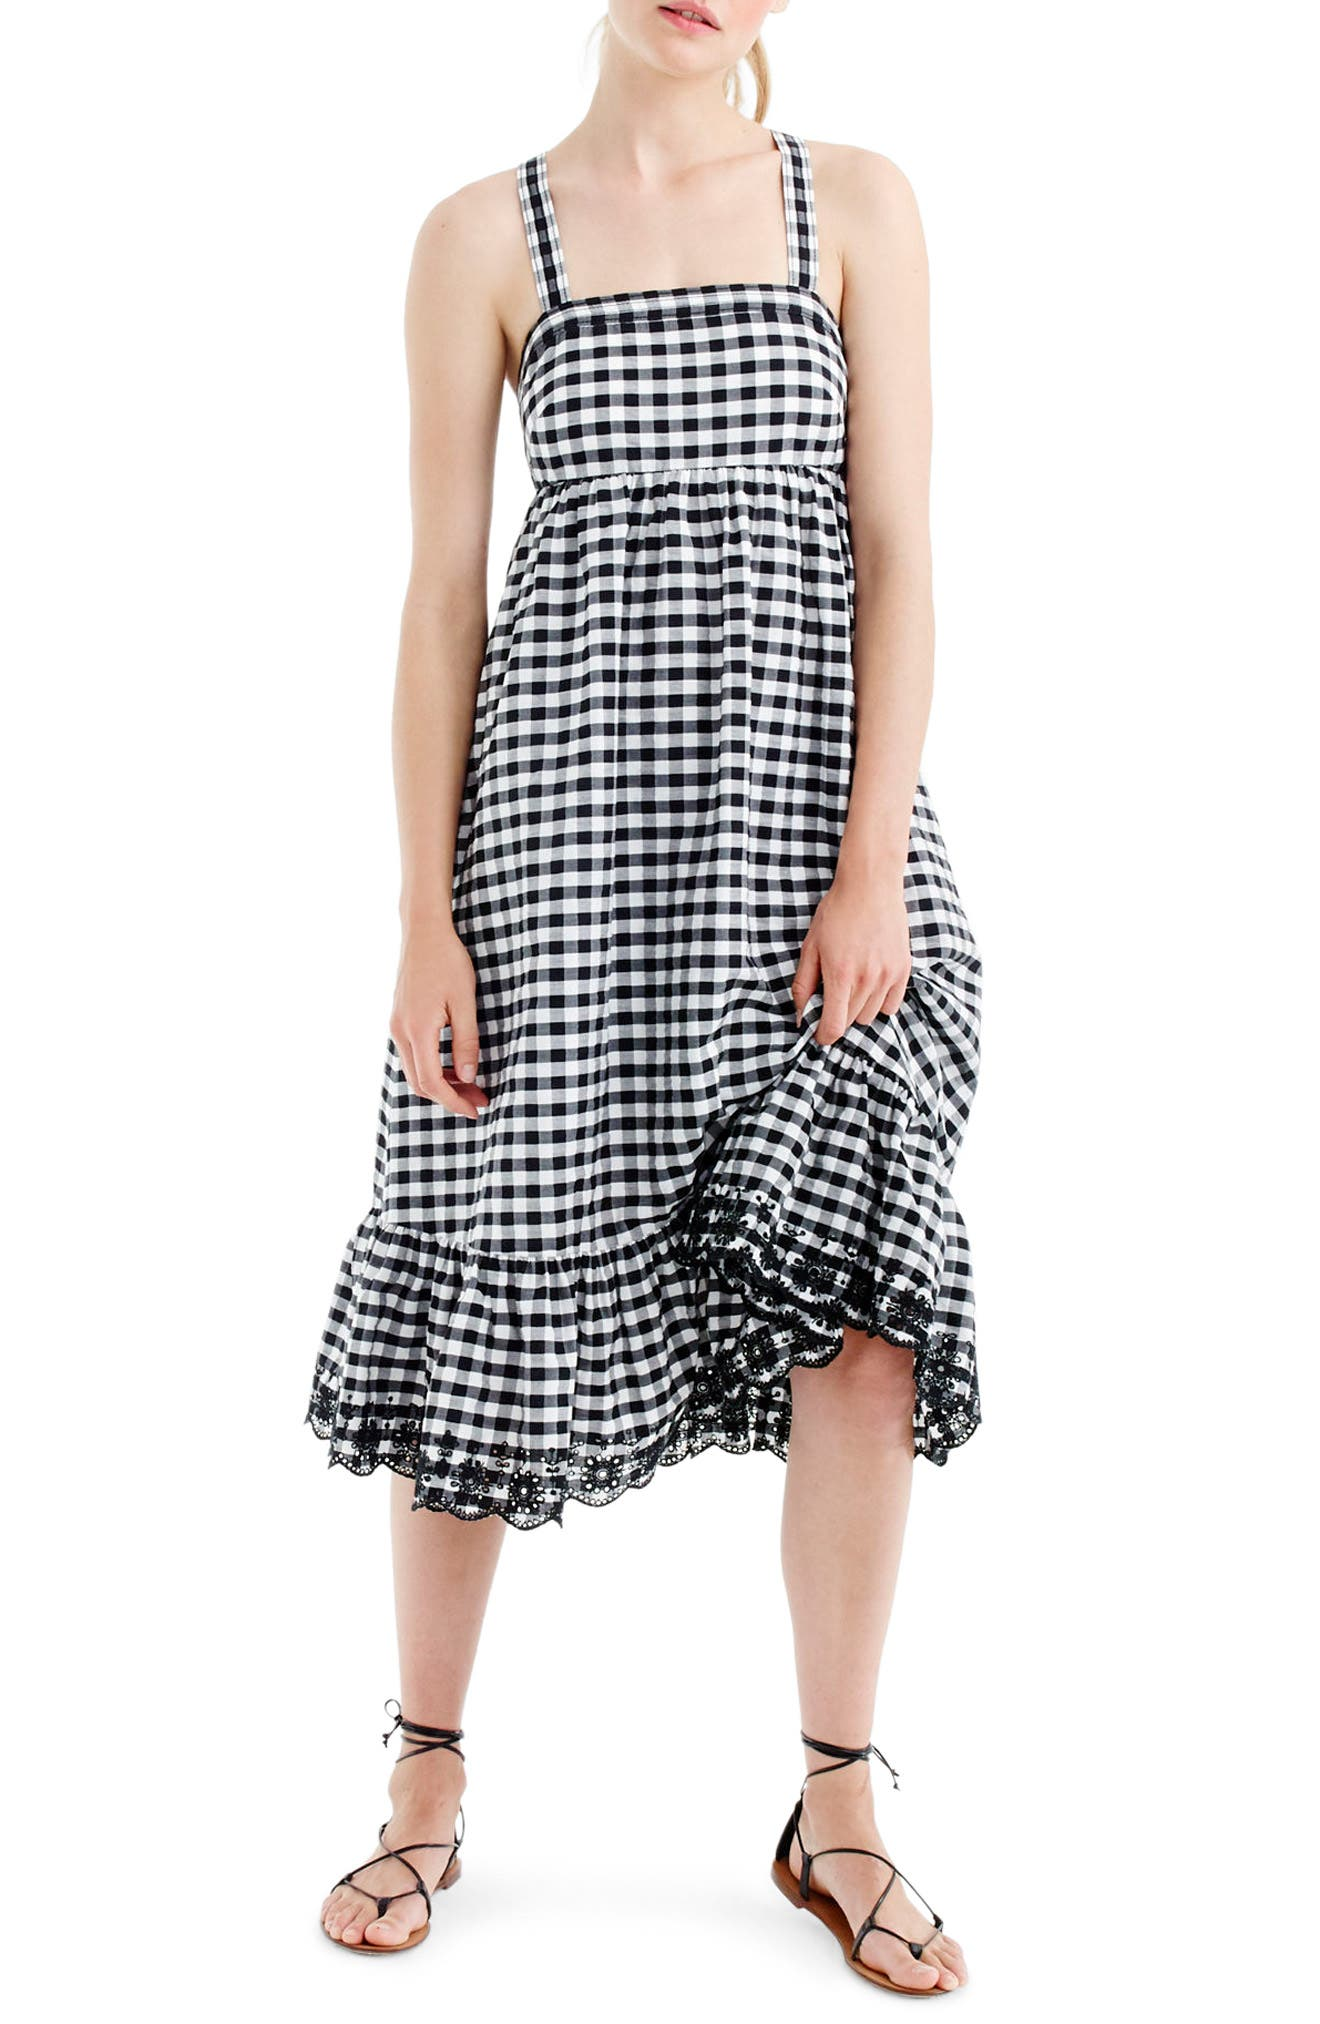 J.Crew Eyelet Trim Puckered Gingham Sundress